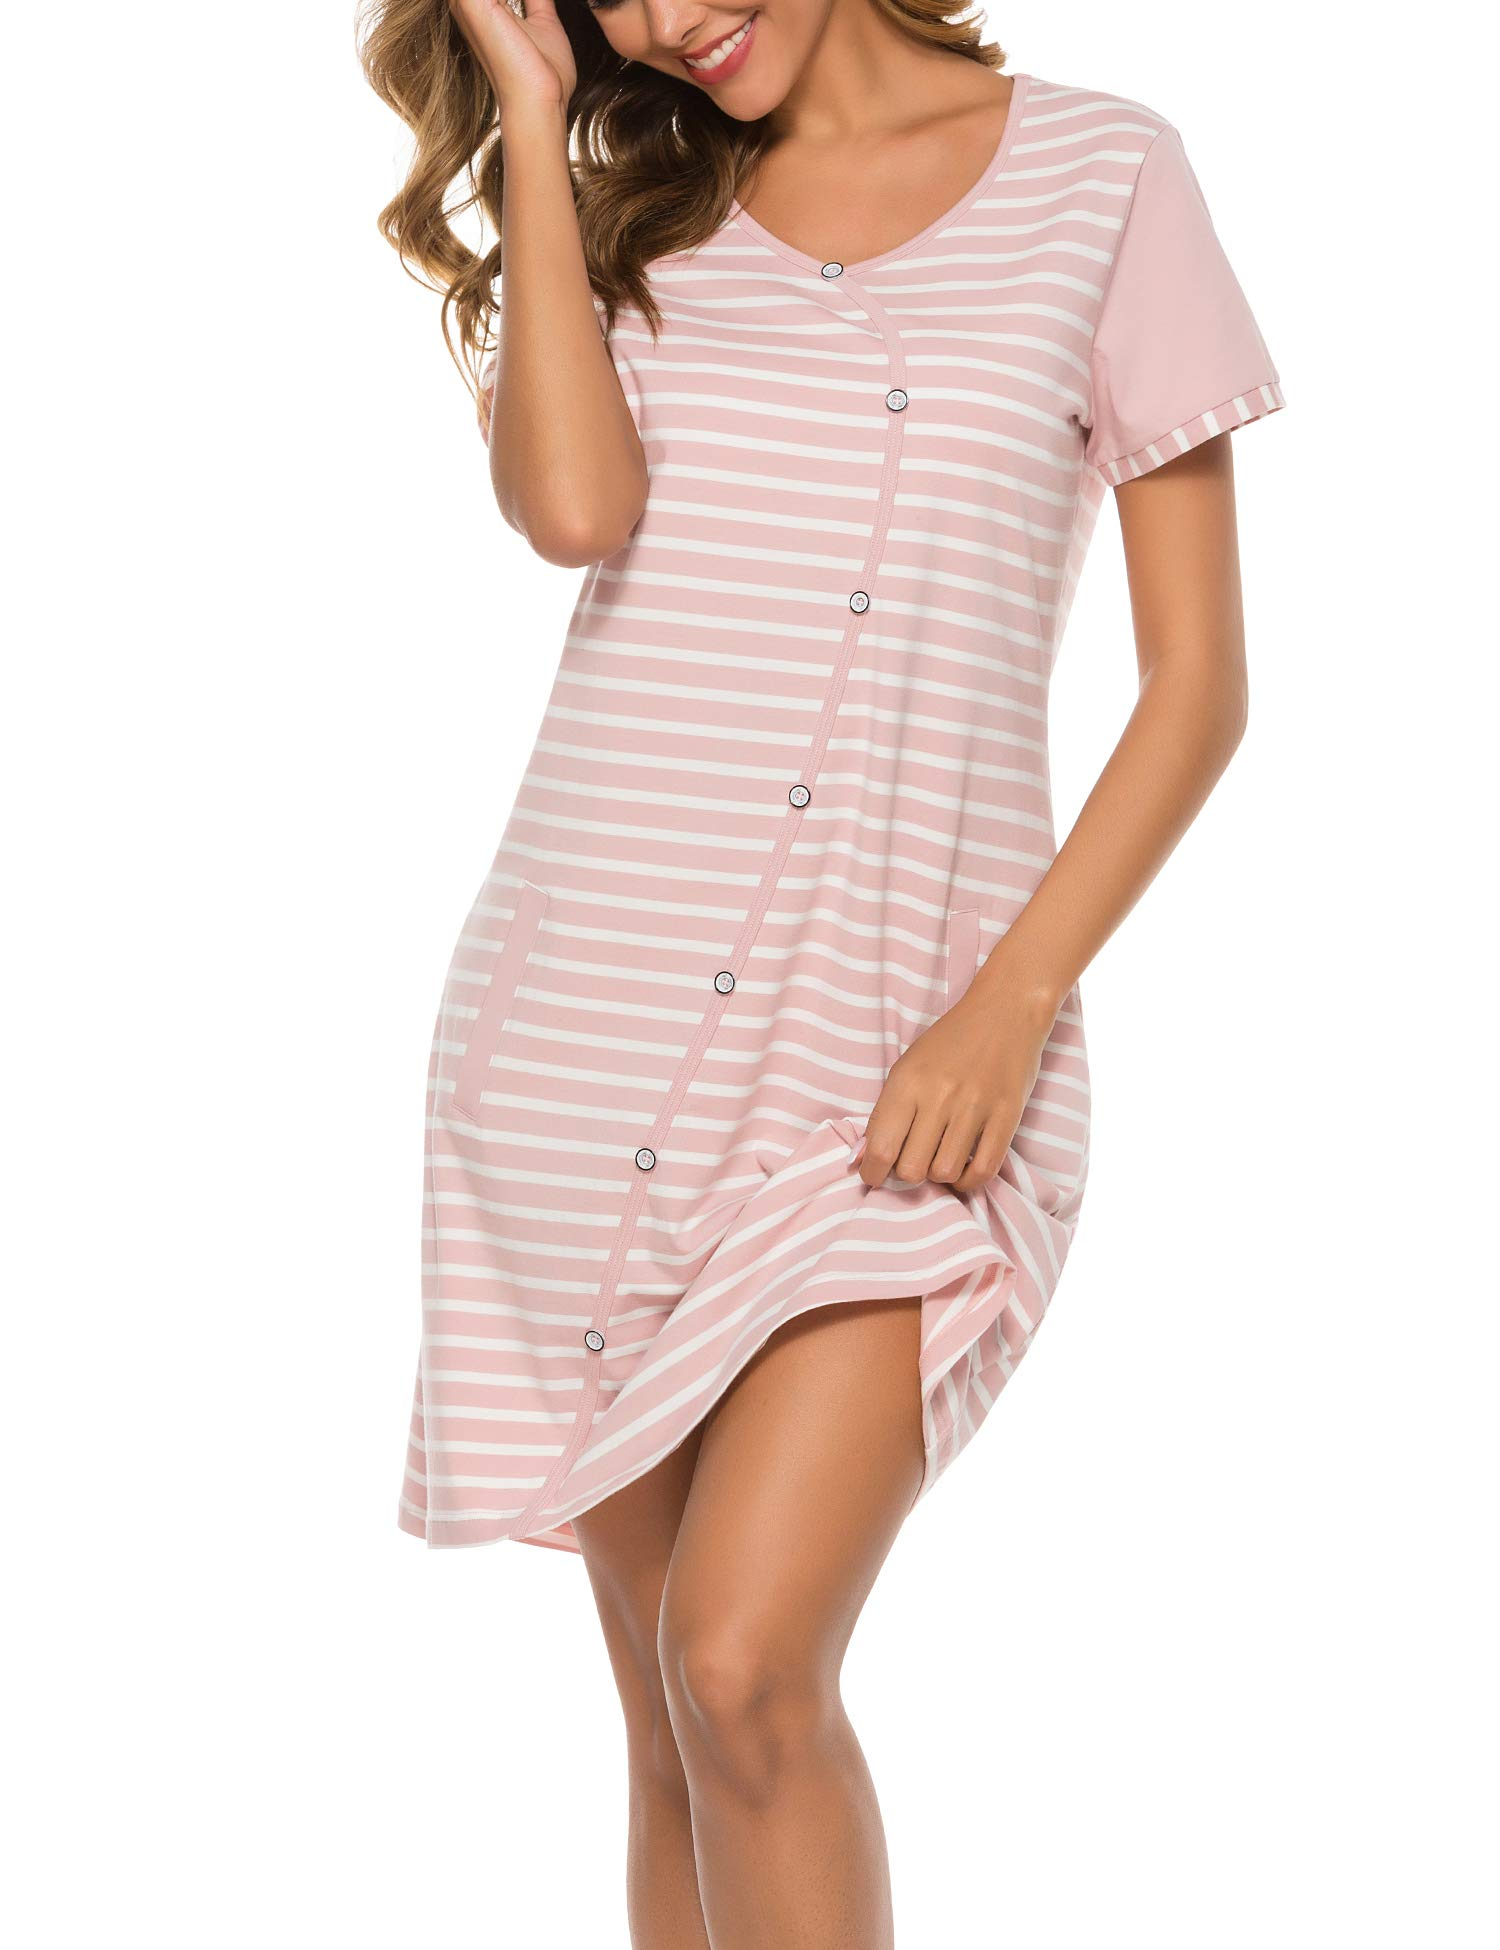 COLORFULLEAF Sleep Dress for Women Striped Cotton Nightgown Short Sleeve Nightshirt